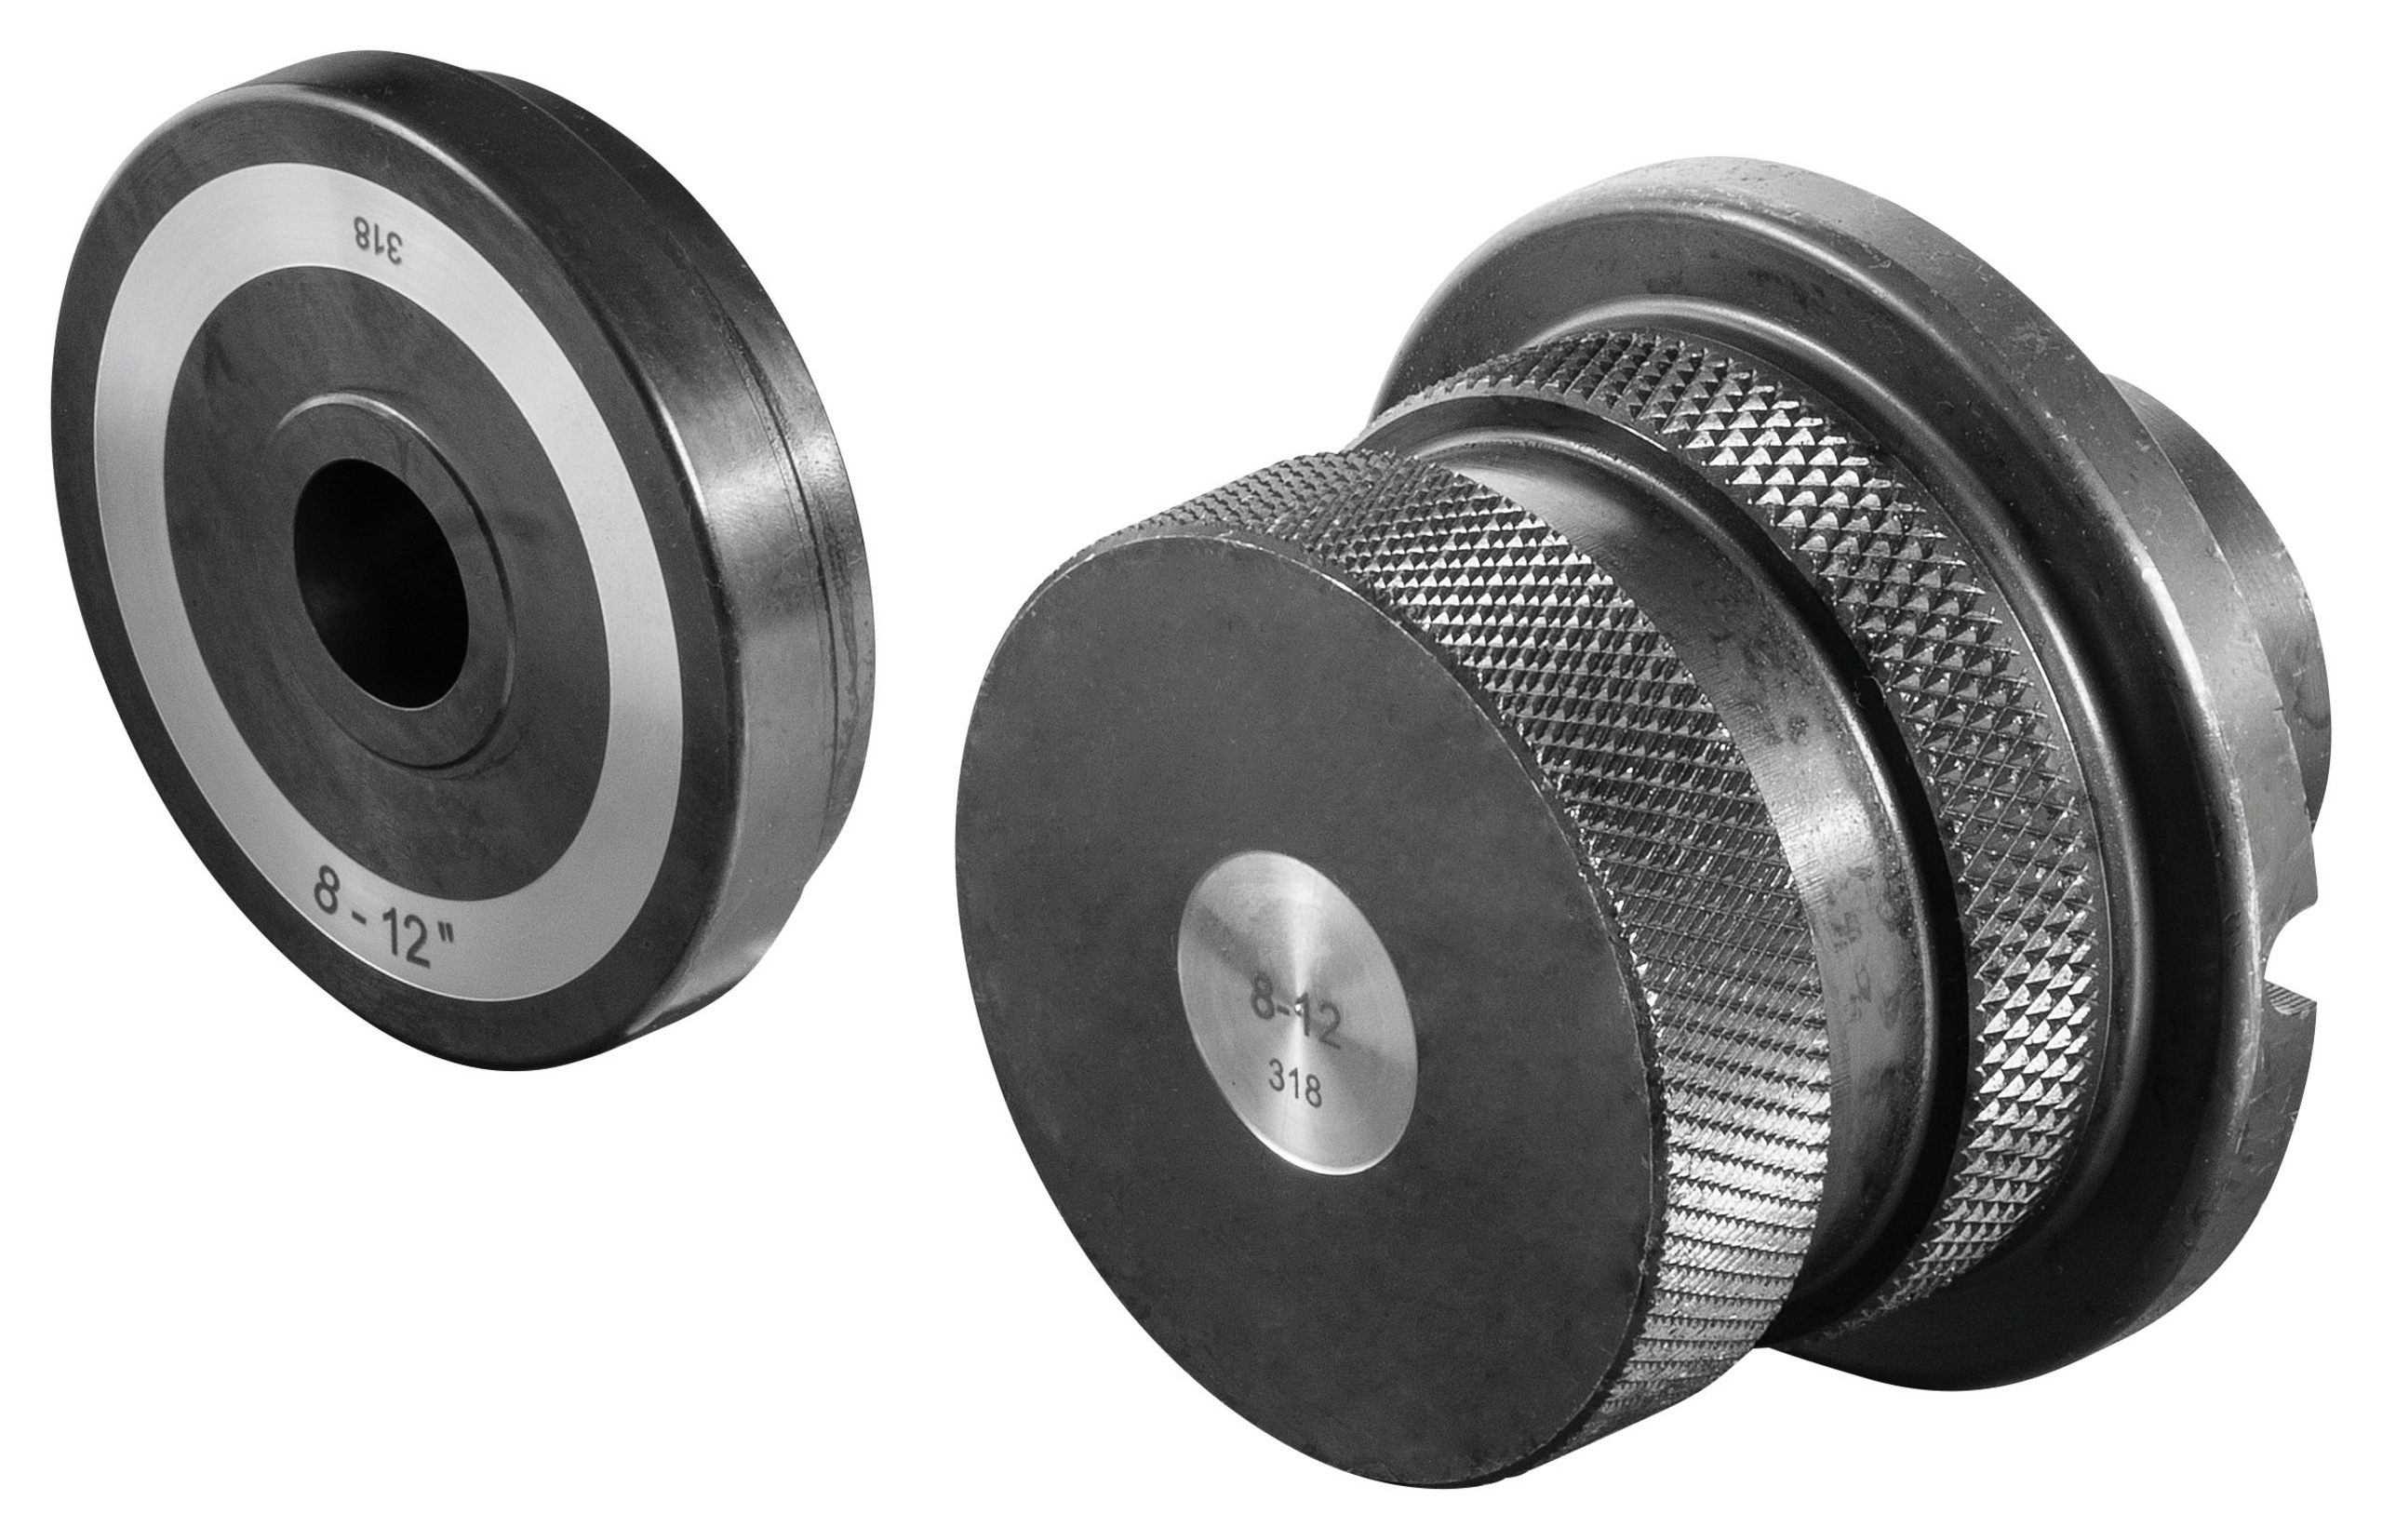 <br/>Grooving rollers 8 - 12